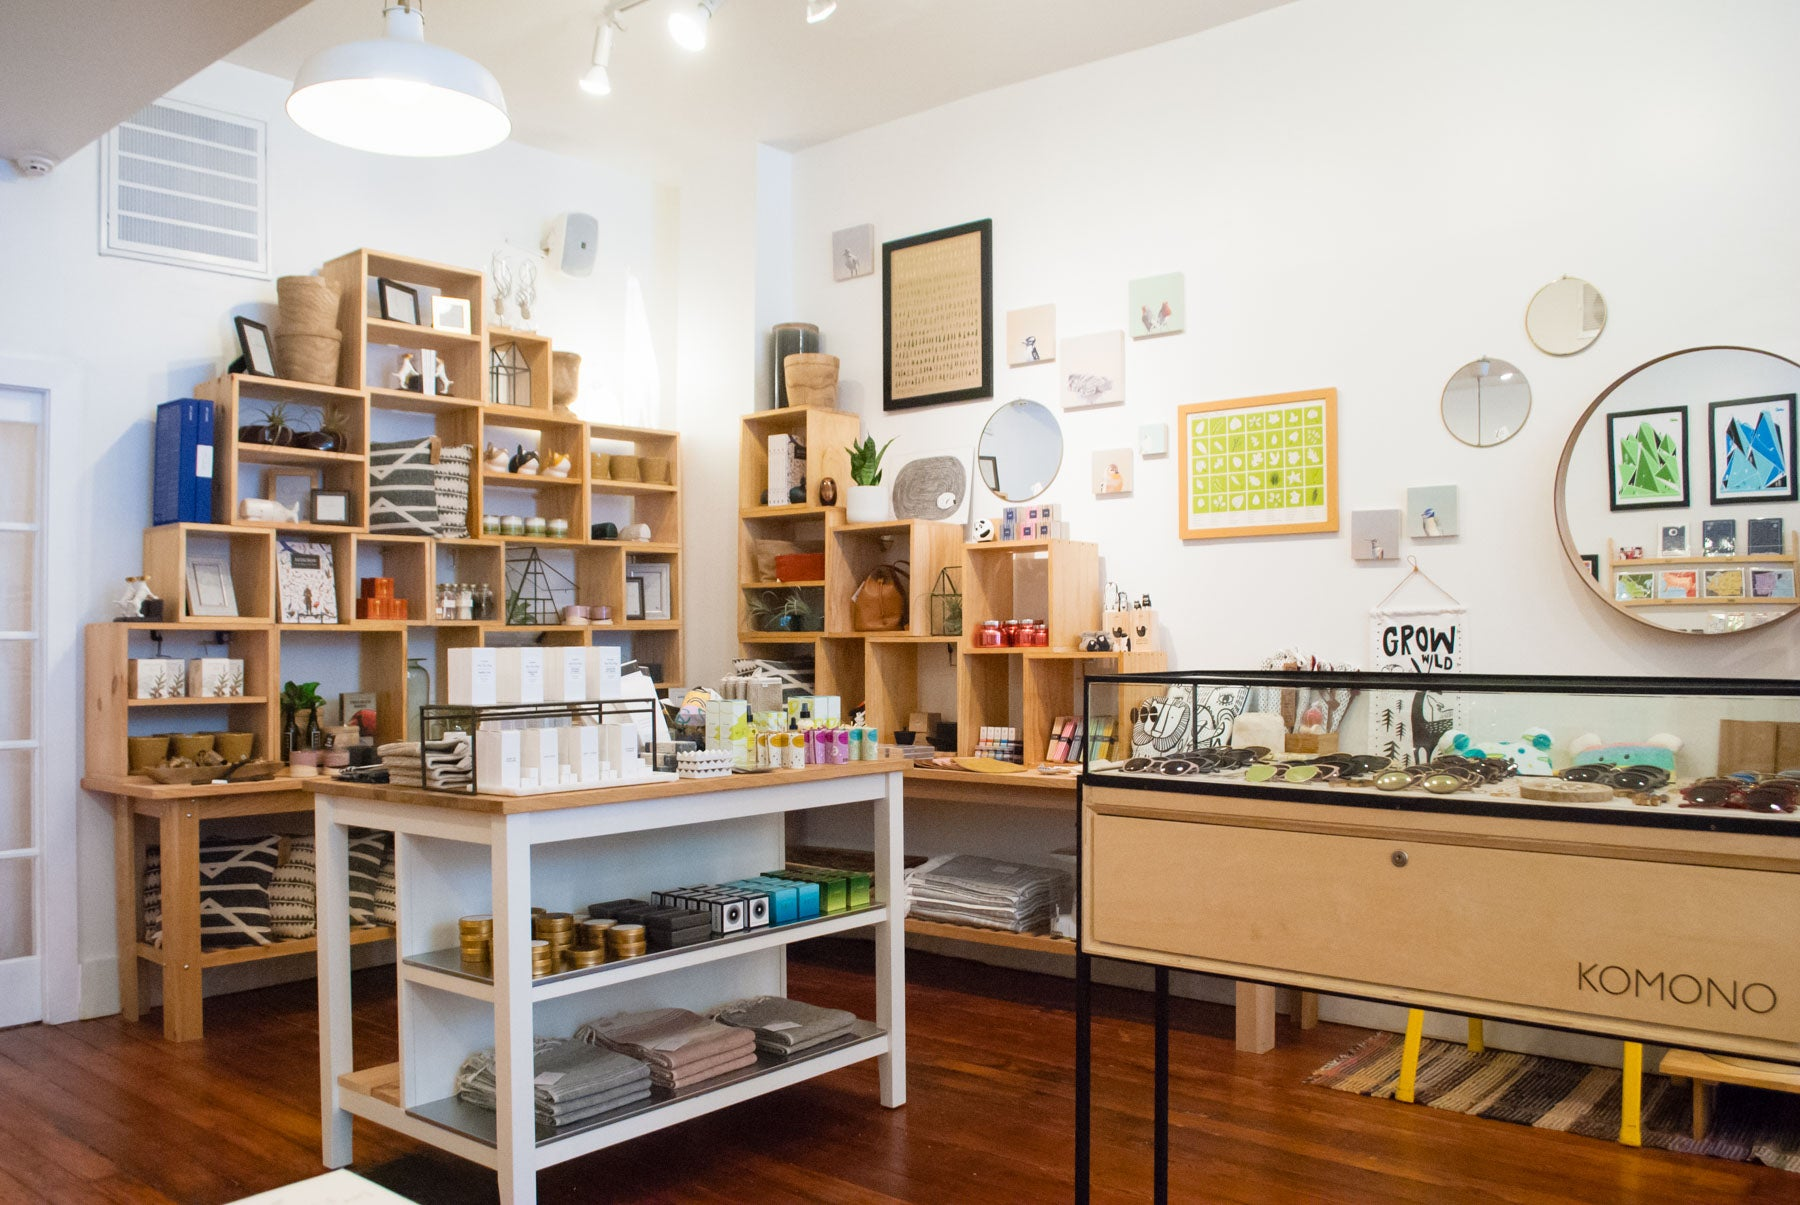 Personal accessories, home goods, and plant-based apothecary selects gather towards the back of the shop